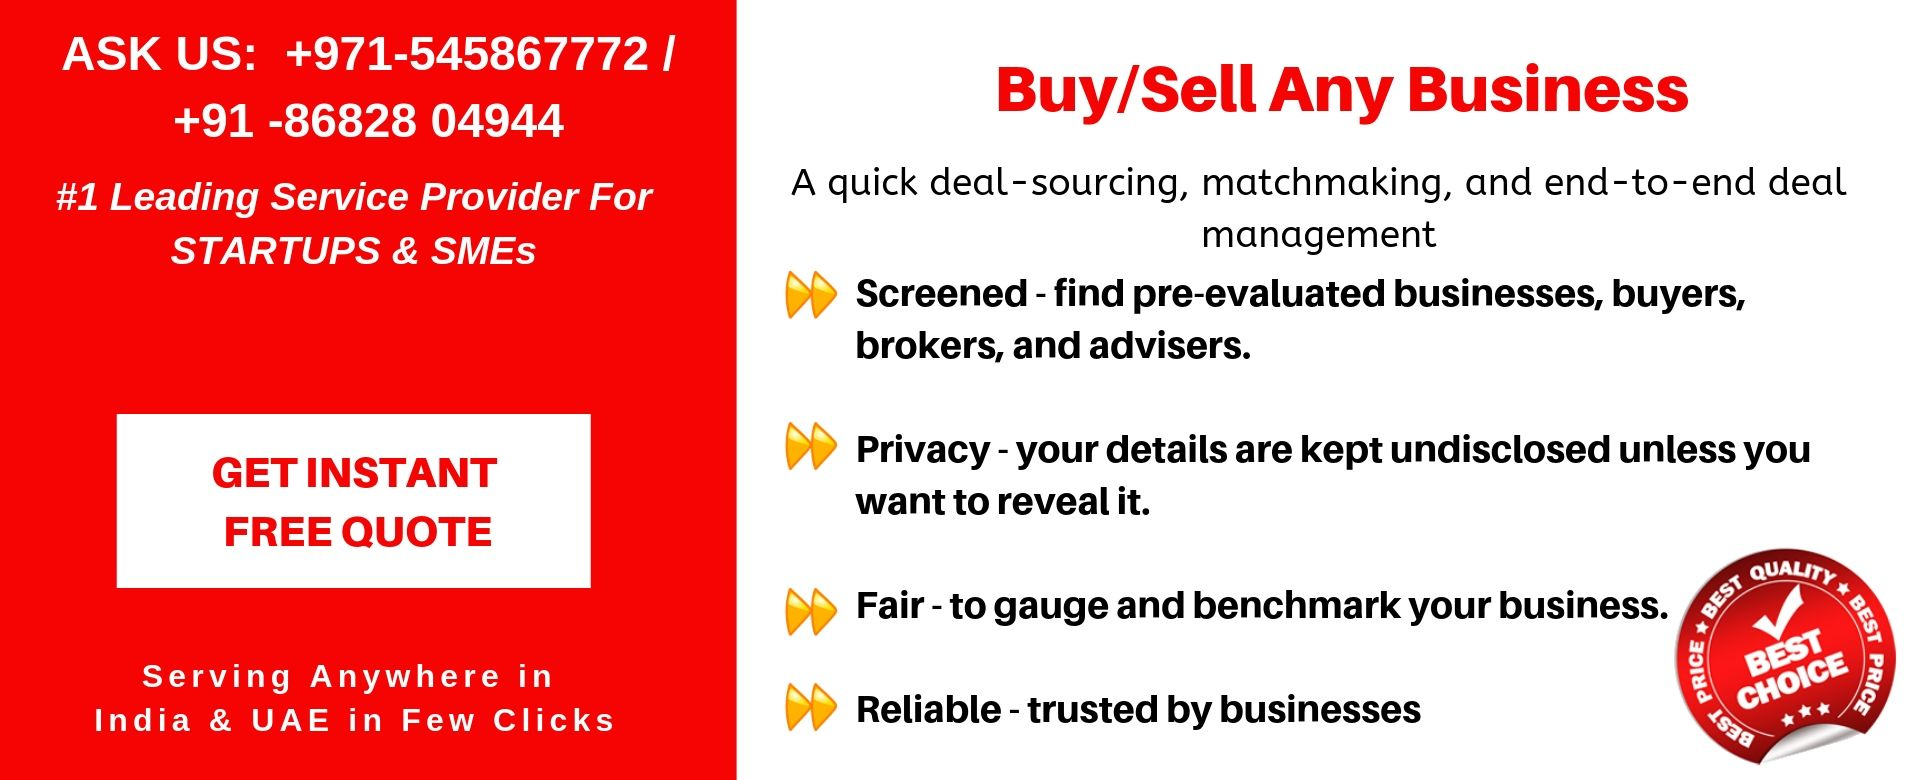 buy-sell-any-business